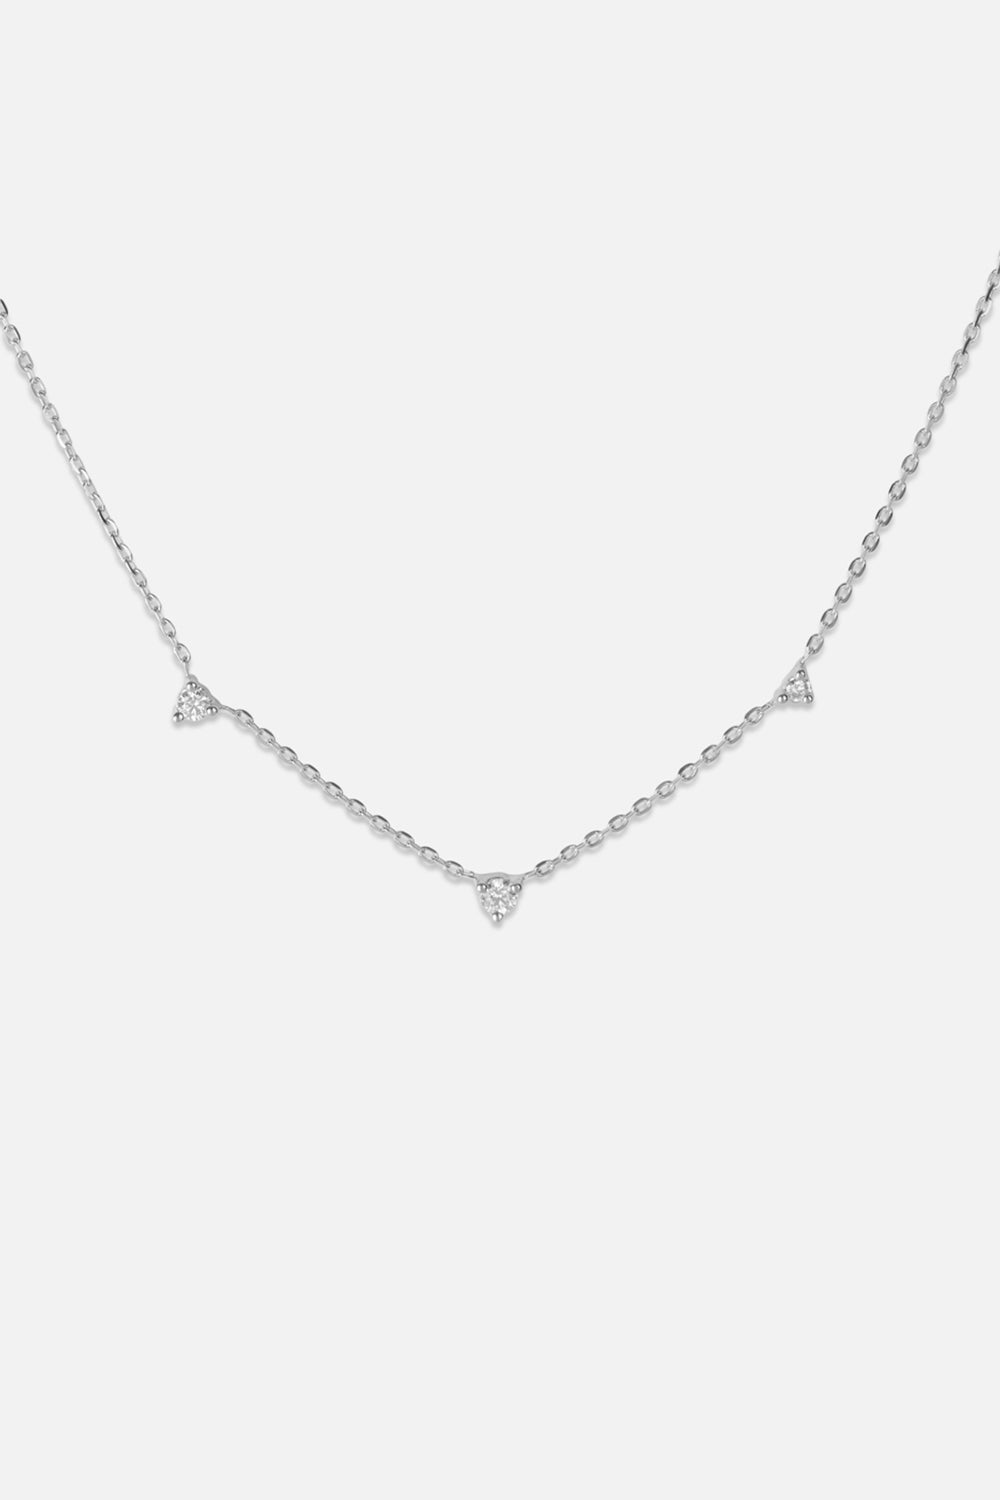 3 Round Diamond Necklace | White Gold